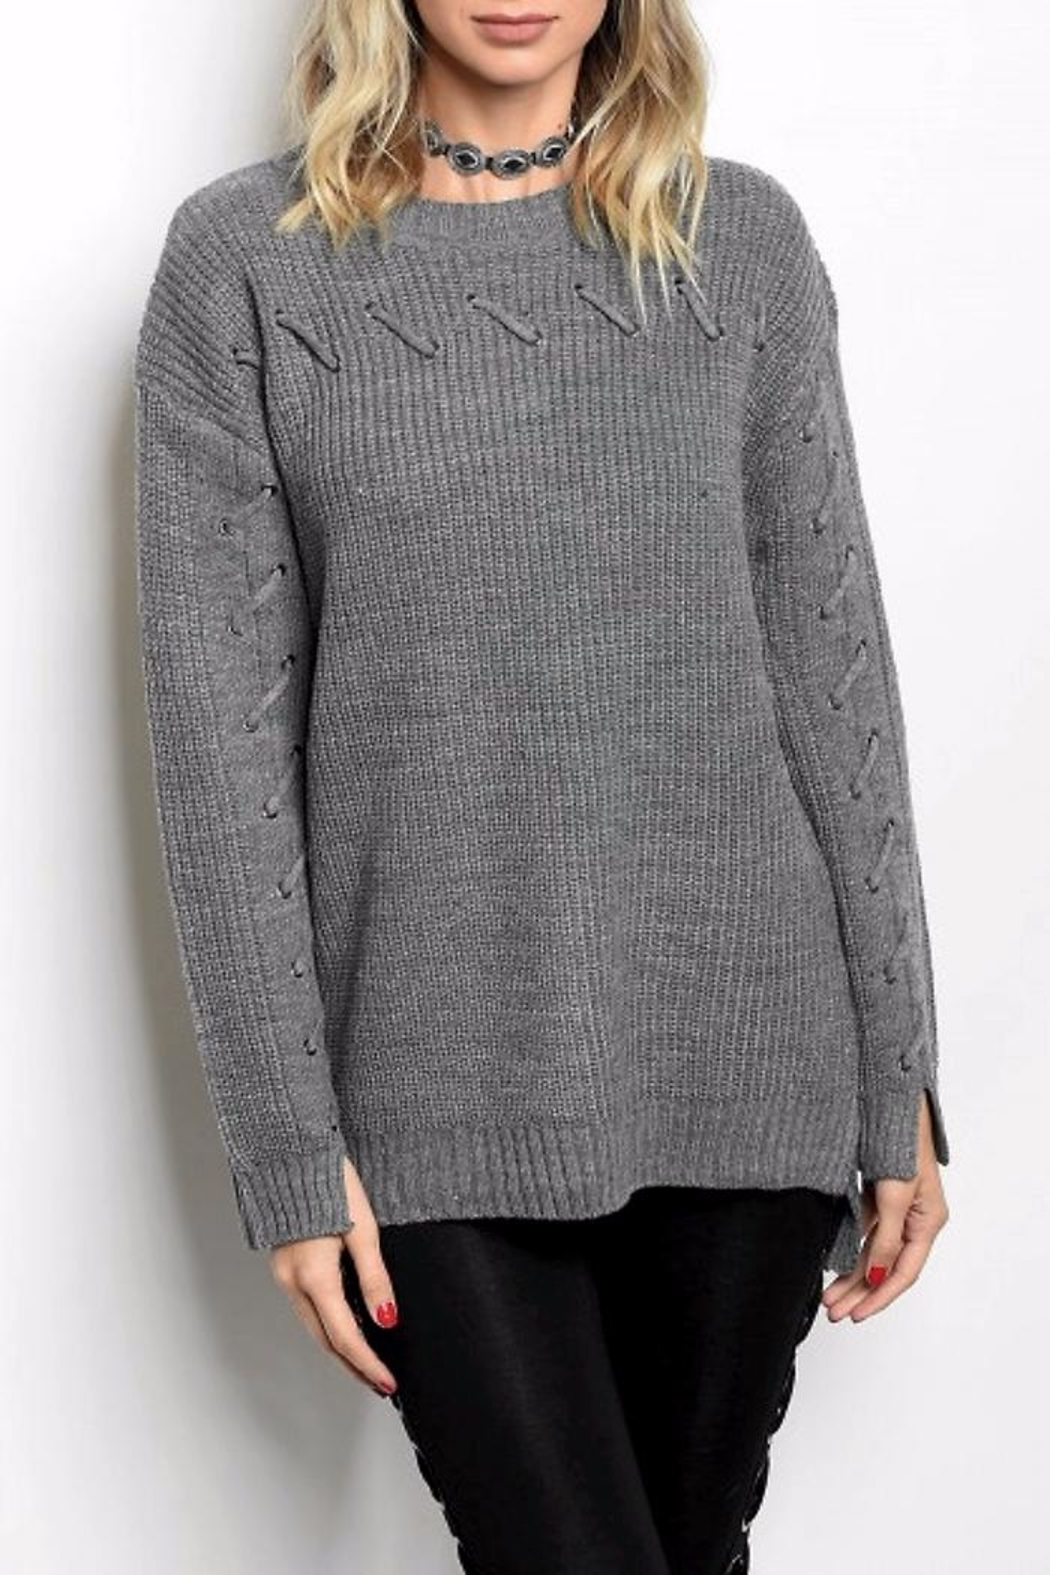 People Outfitter Grey Lace-Up Sweater - Main Image